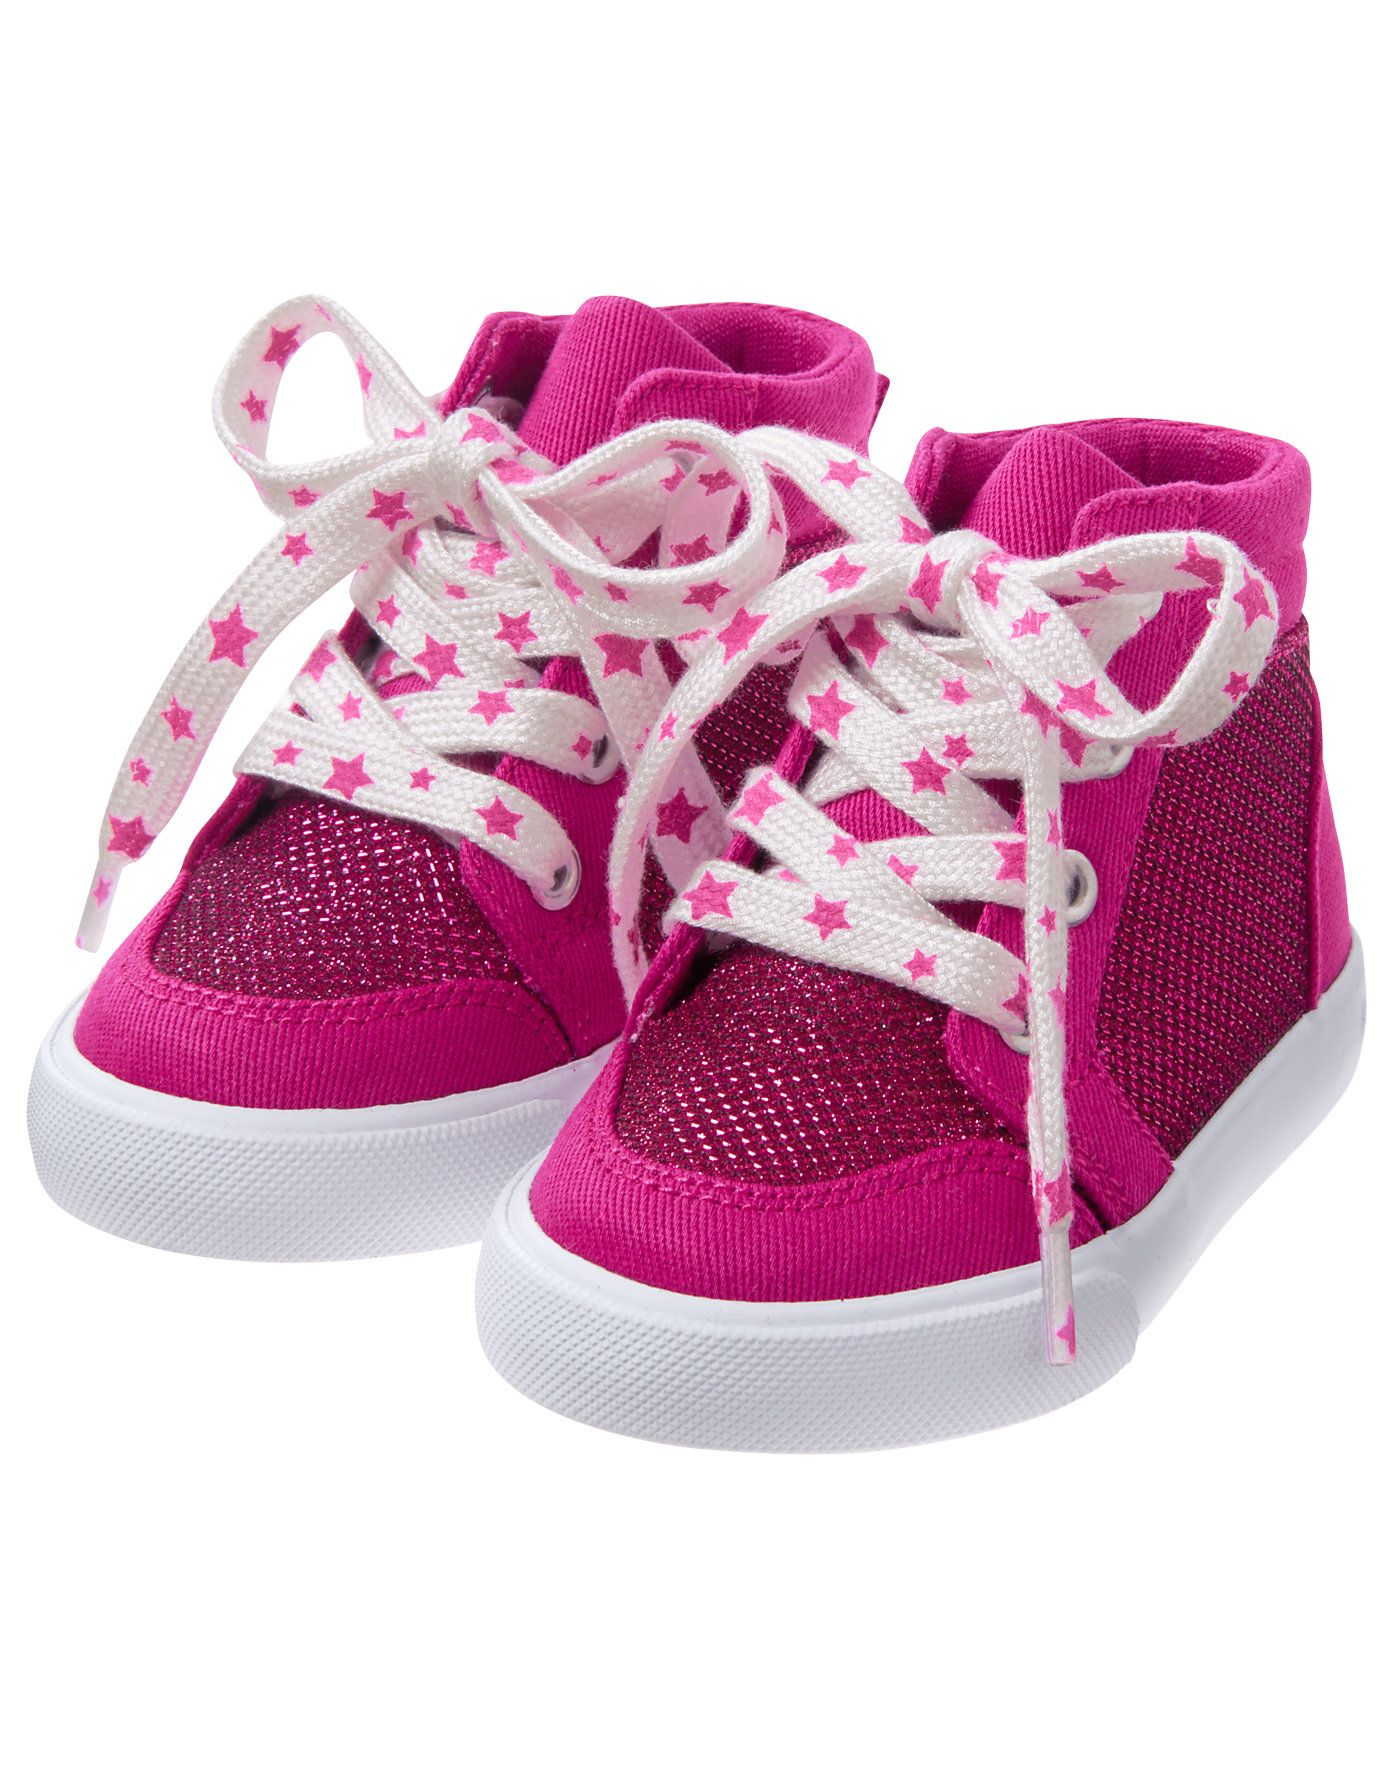 Sparkle Sneakers | Toddler girl outfits